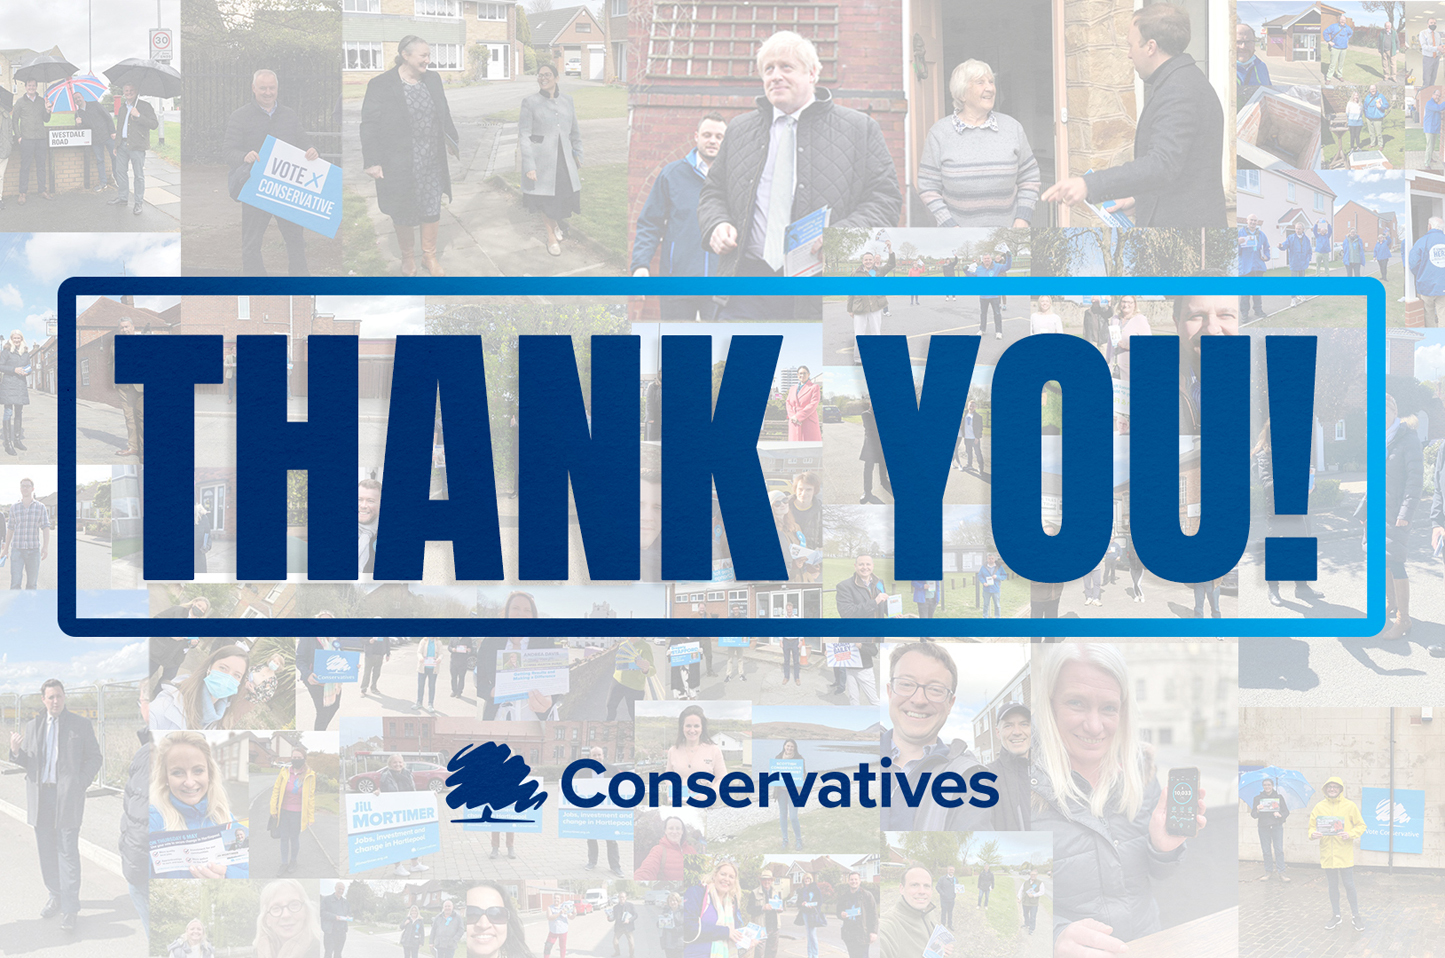 Thank you to everyone who voted Conservative to deliver on the people's priorities